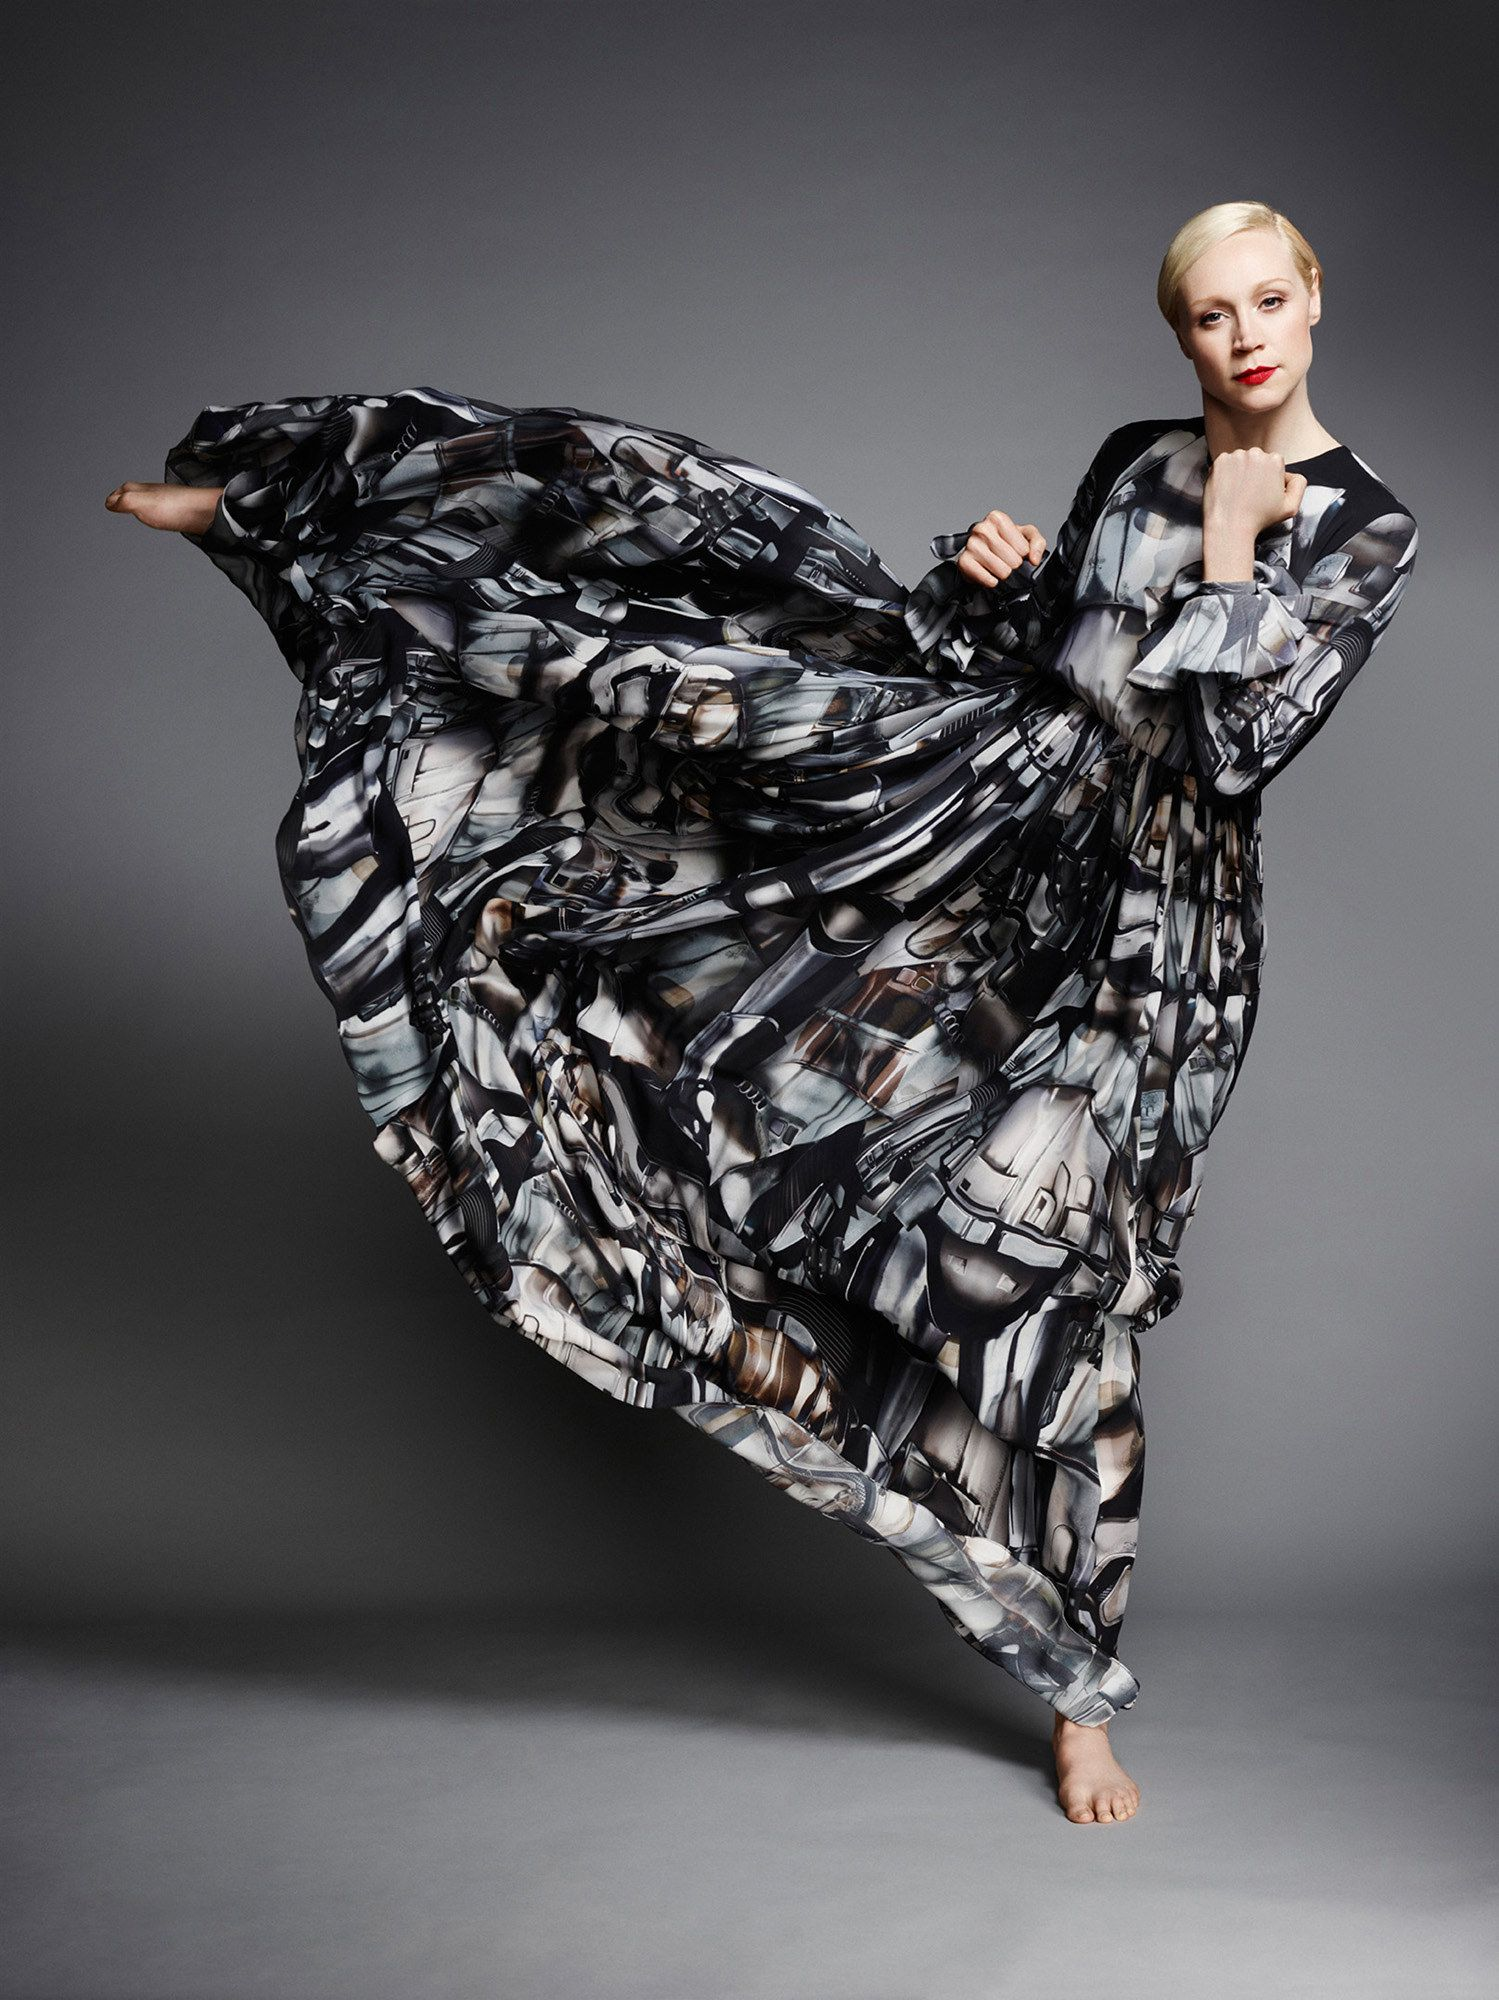 Exclusive Gwendoline Christies Captain Phasma Inspired Gown The